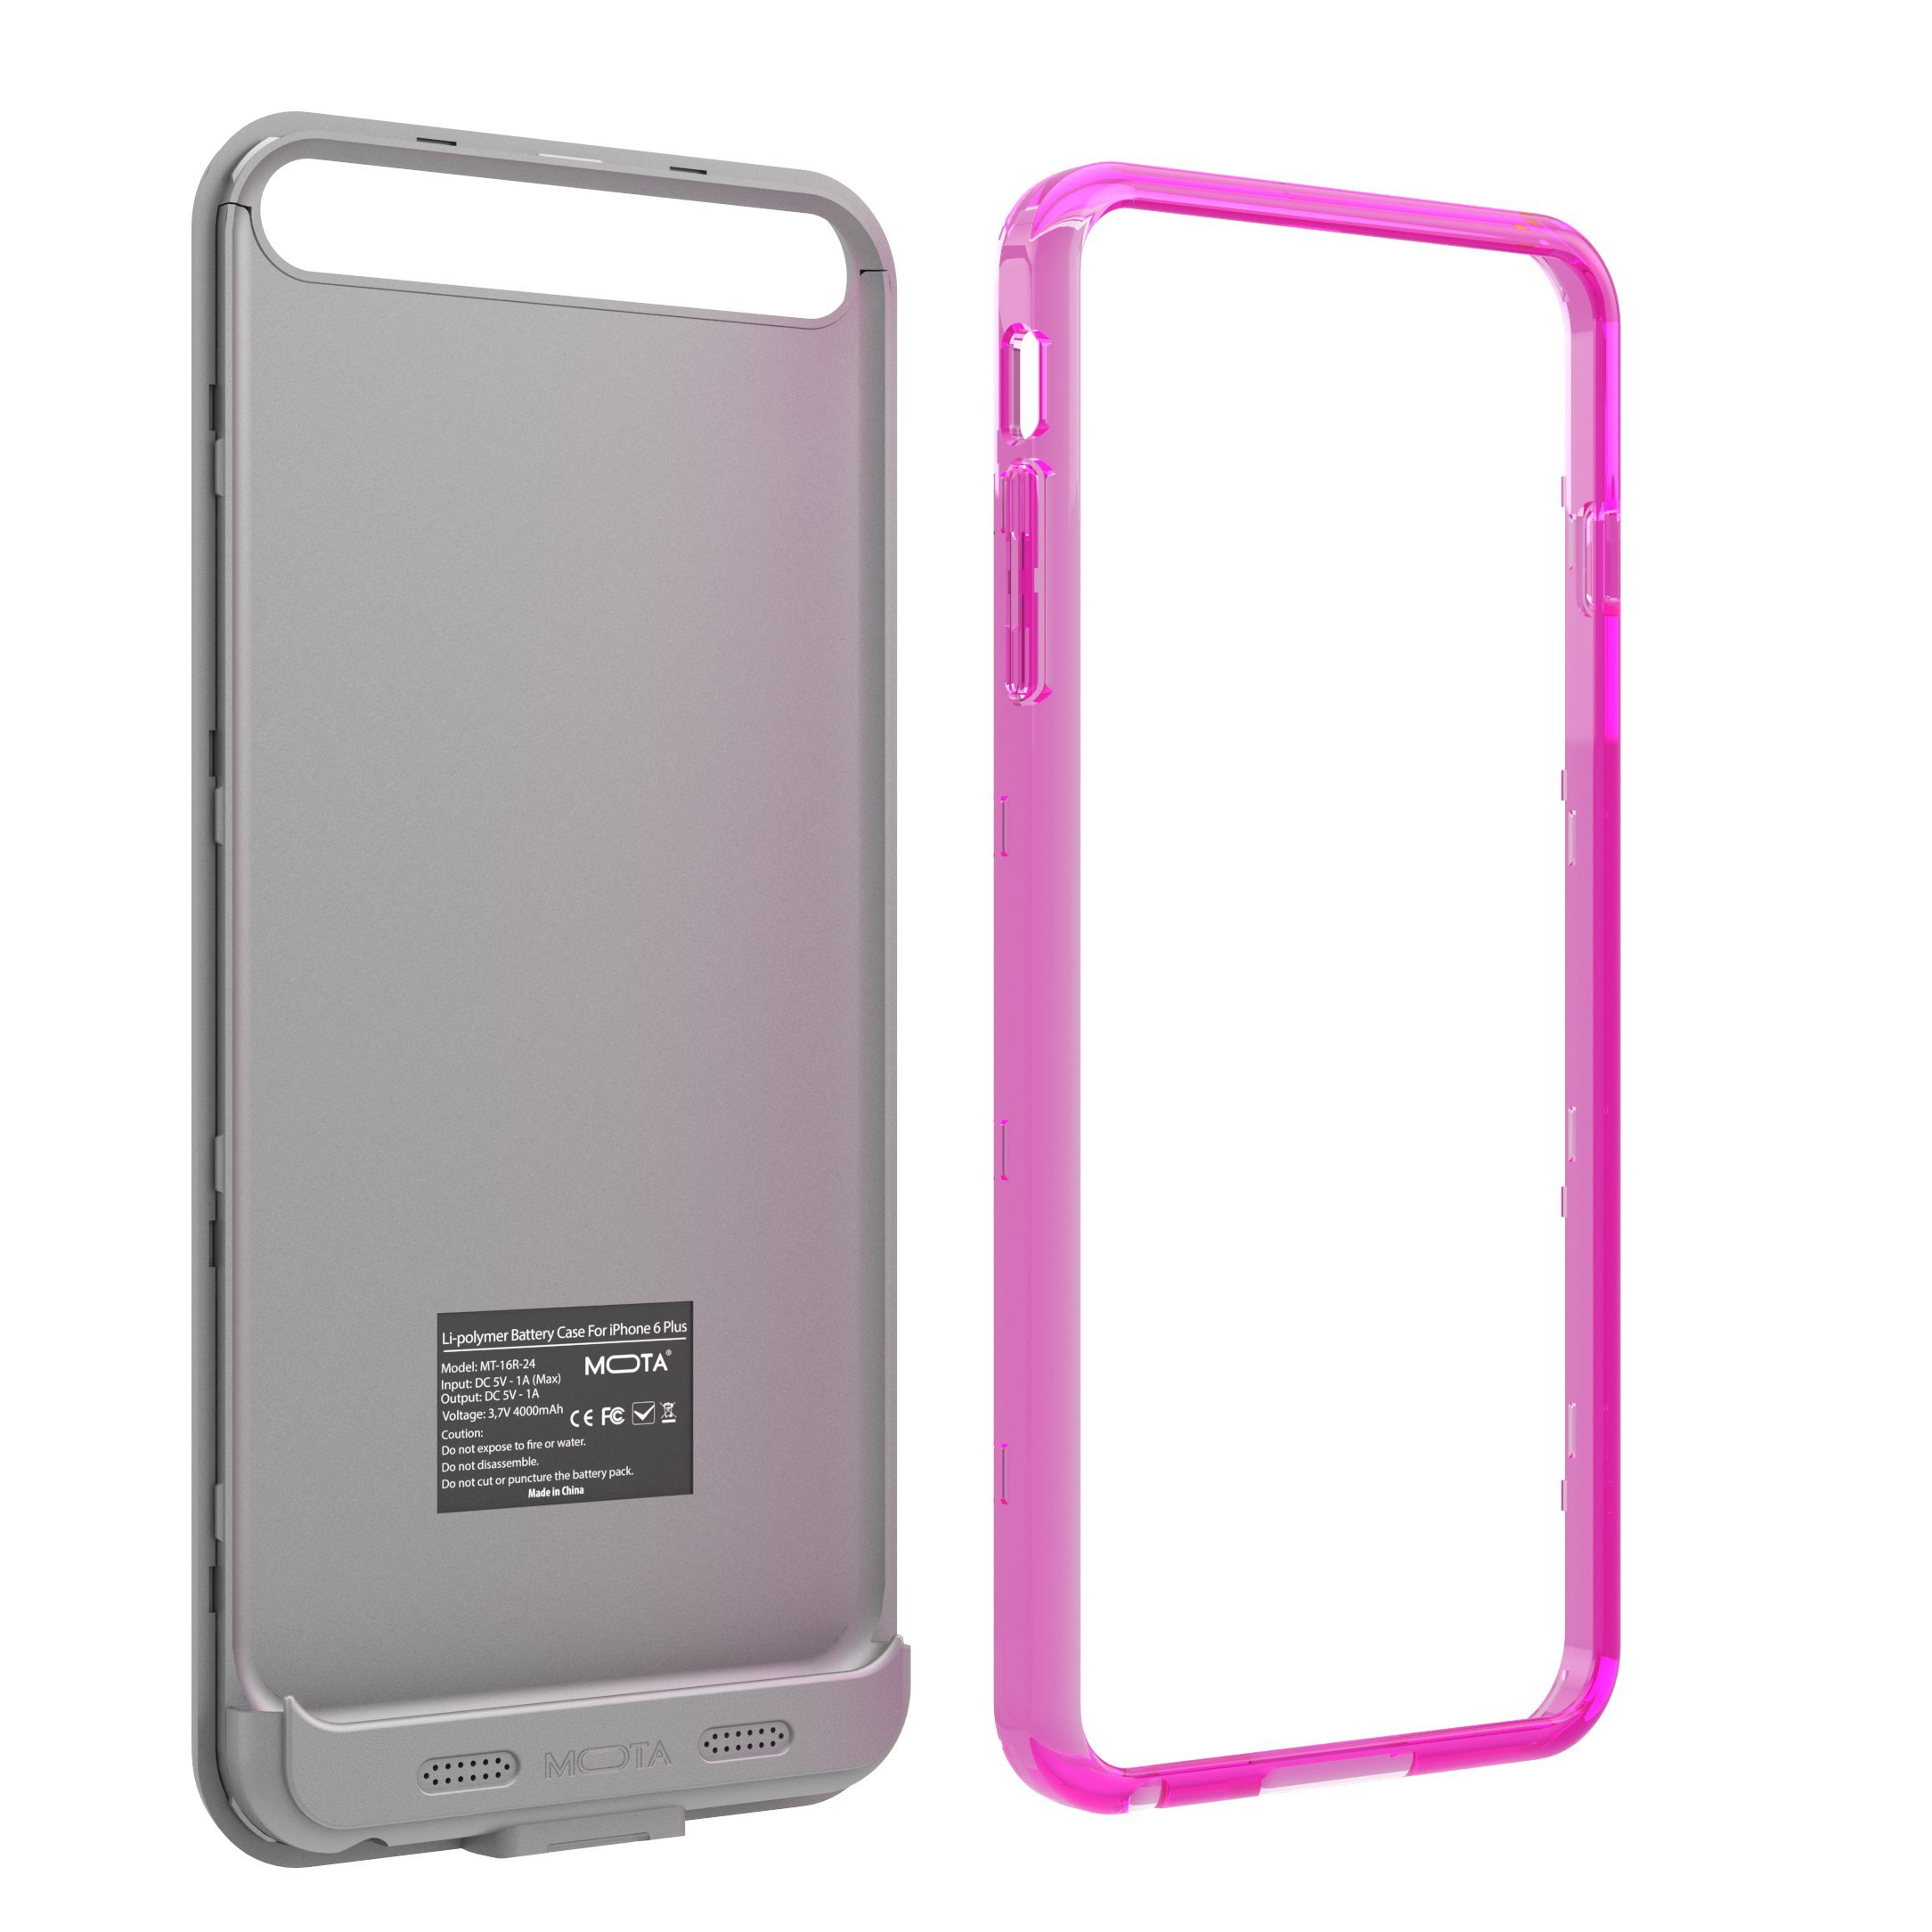 TAMO iPhone 6/6s Extended Battery Case, TAMO 2400 mAh dual-purposed Ultra-Slim Protective Extended Battery Case - Pink - Battery - Retail Packaging - Pink by TAMO (Image #8)